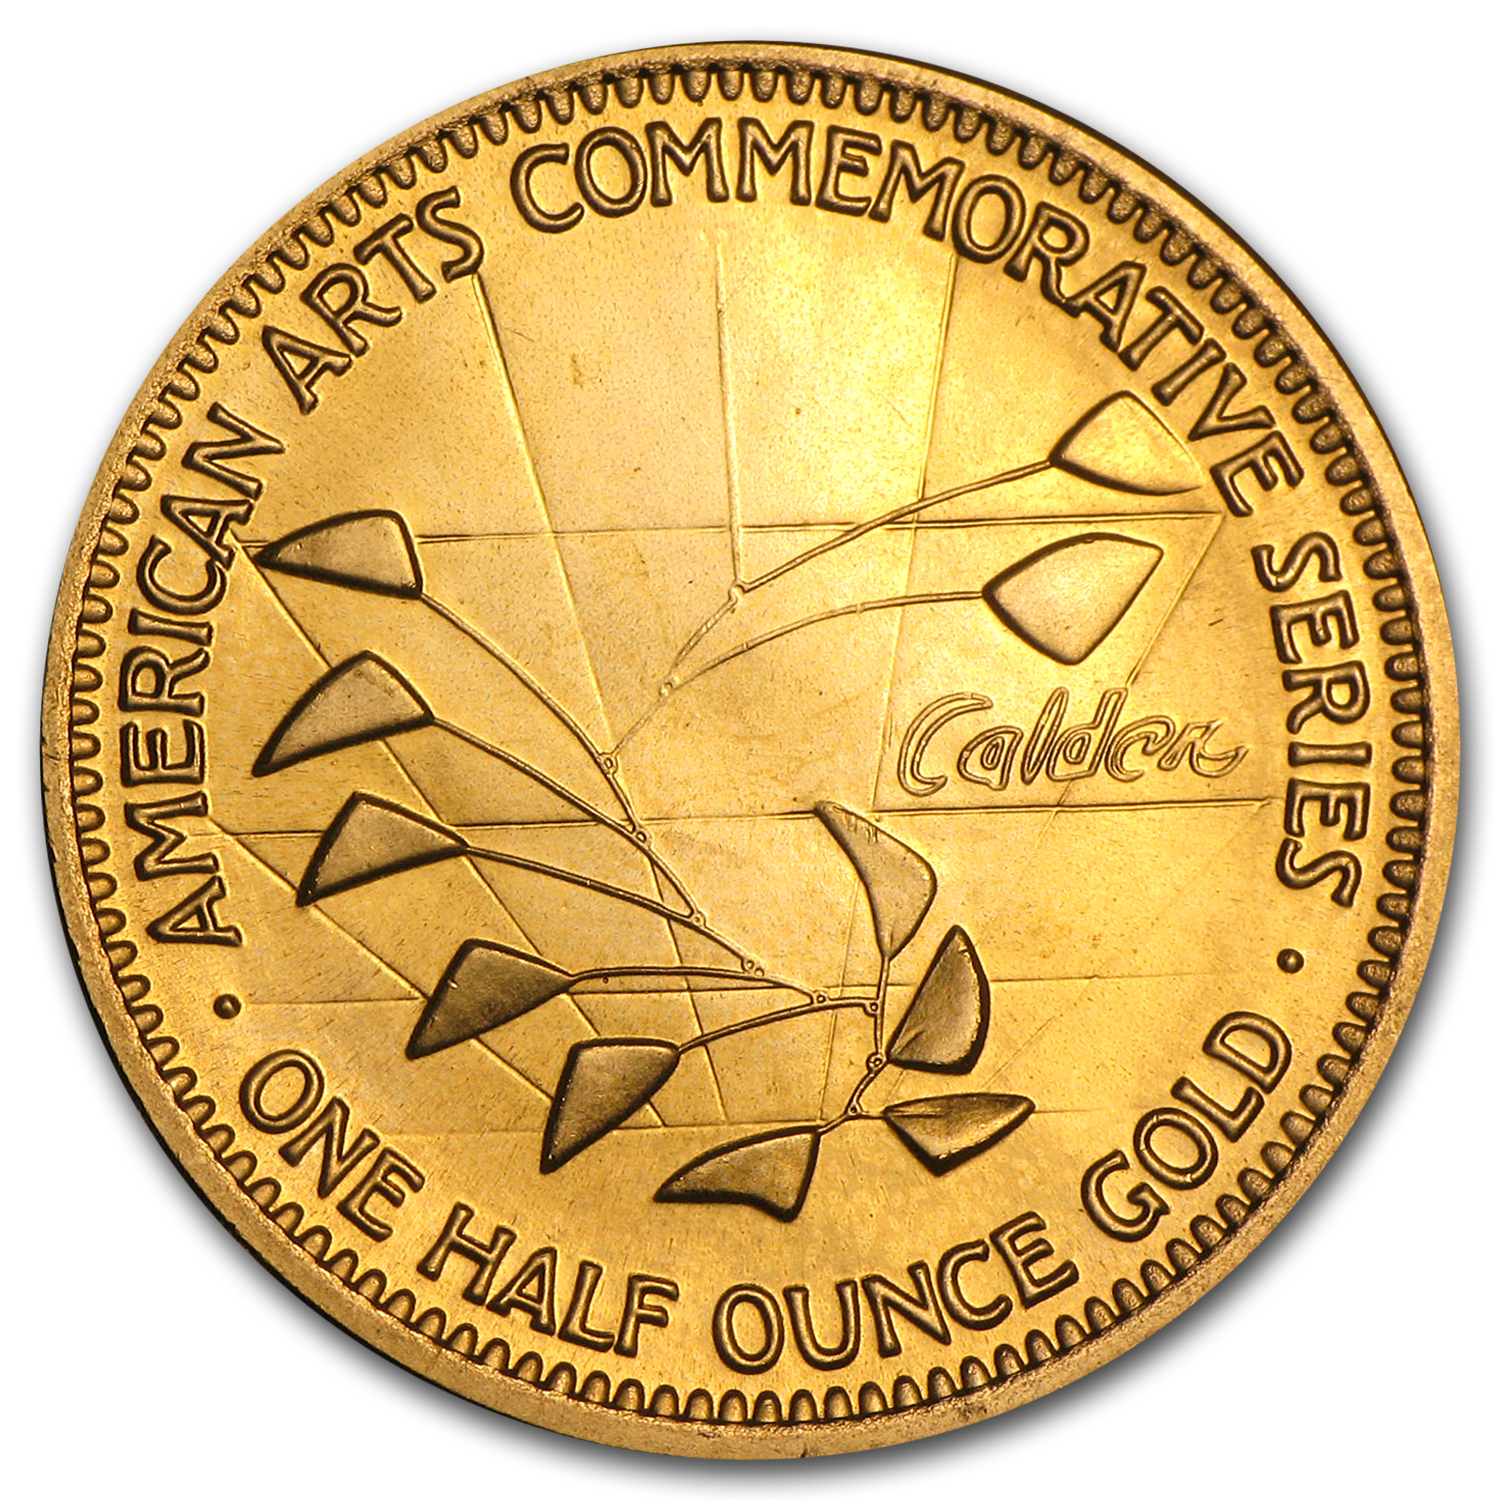 U.S. Mint 1/2 oz Gold Commemorative Arts Medal Alexander Calder